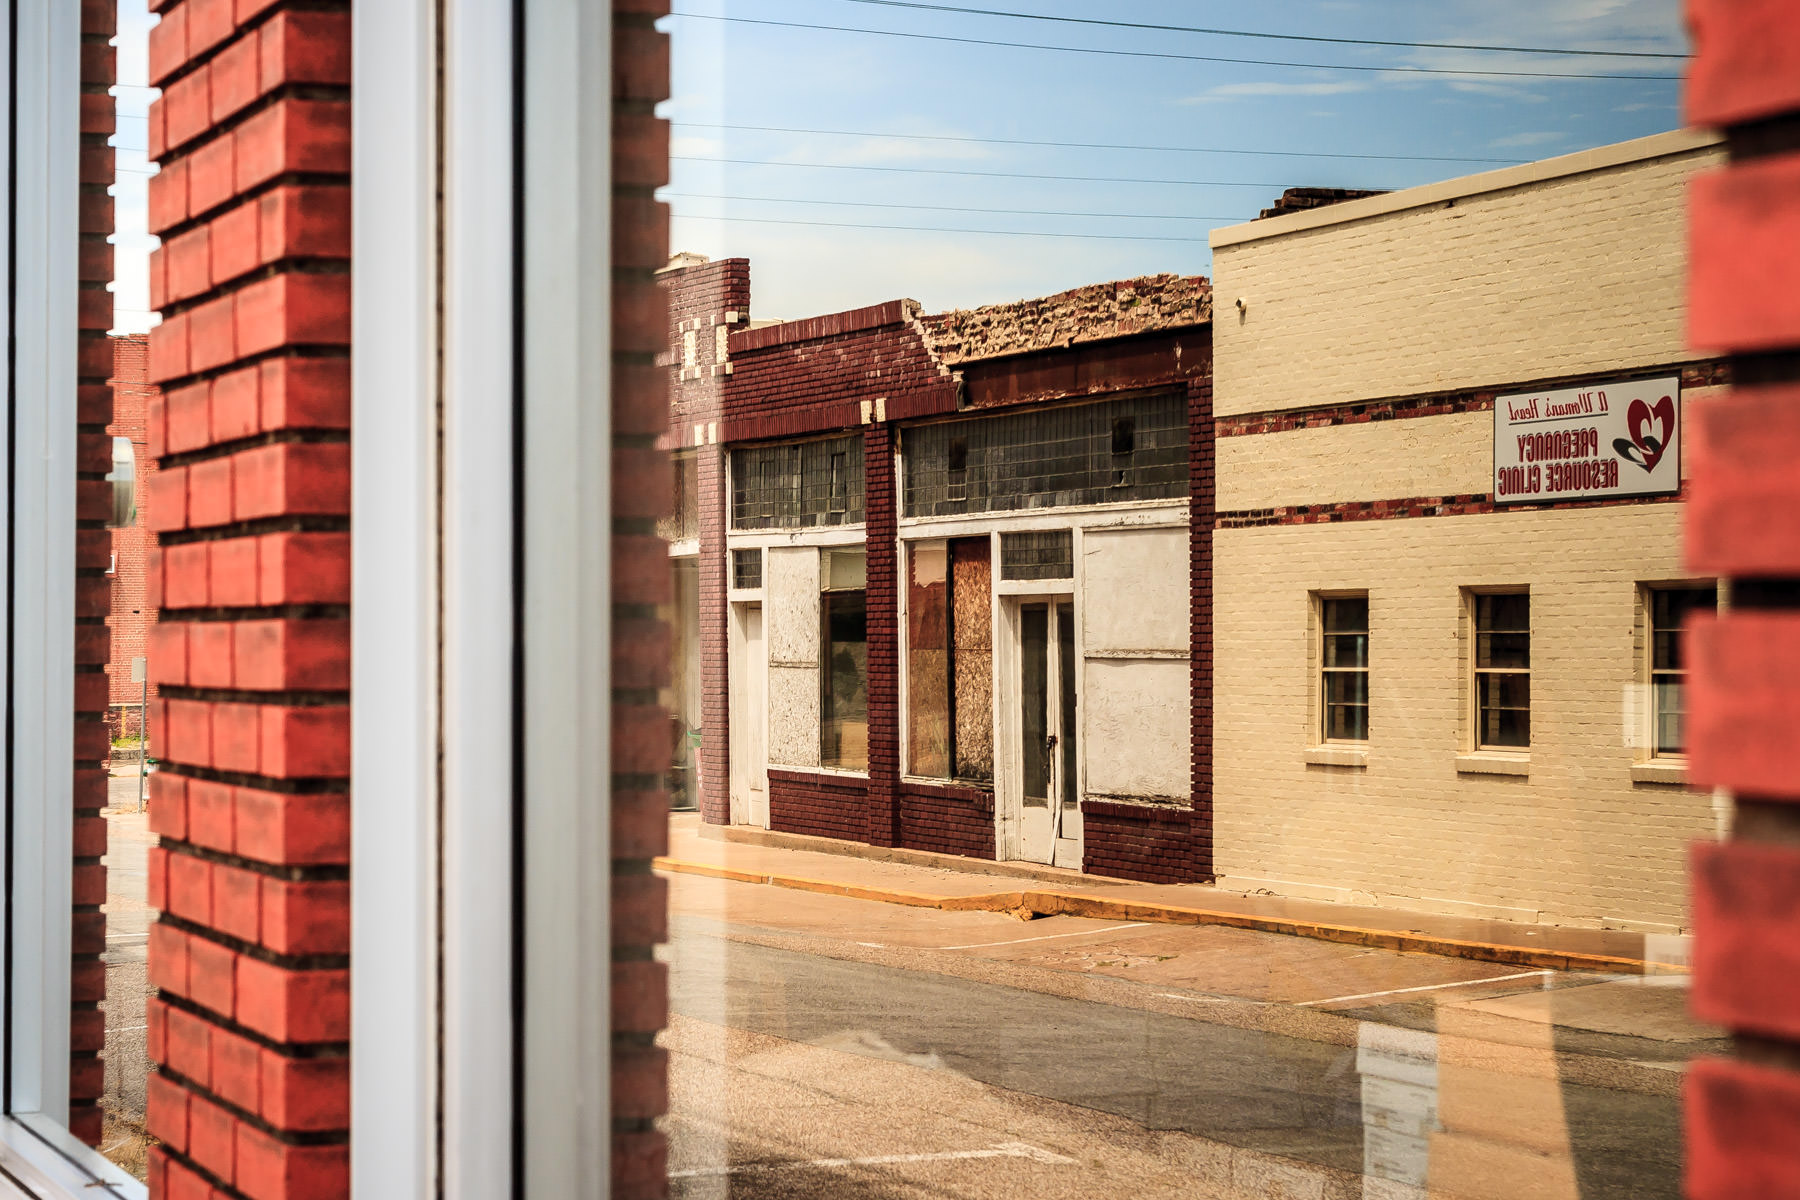 Windows reflect the street in Downtown Greenville, Texas.